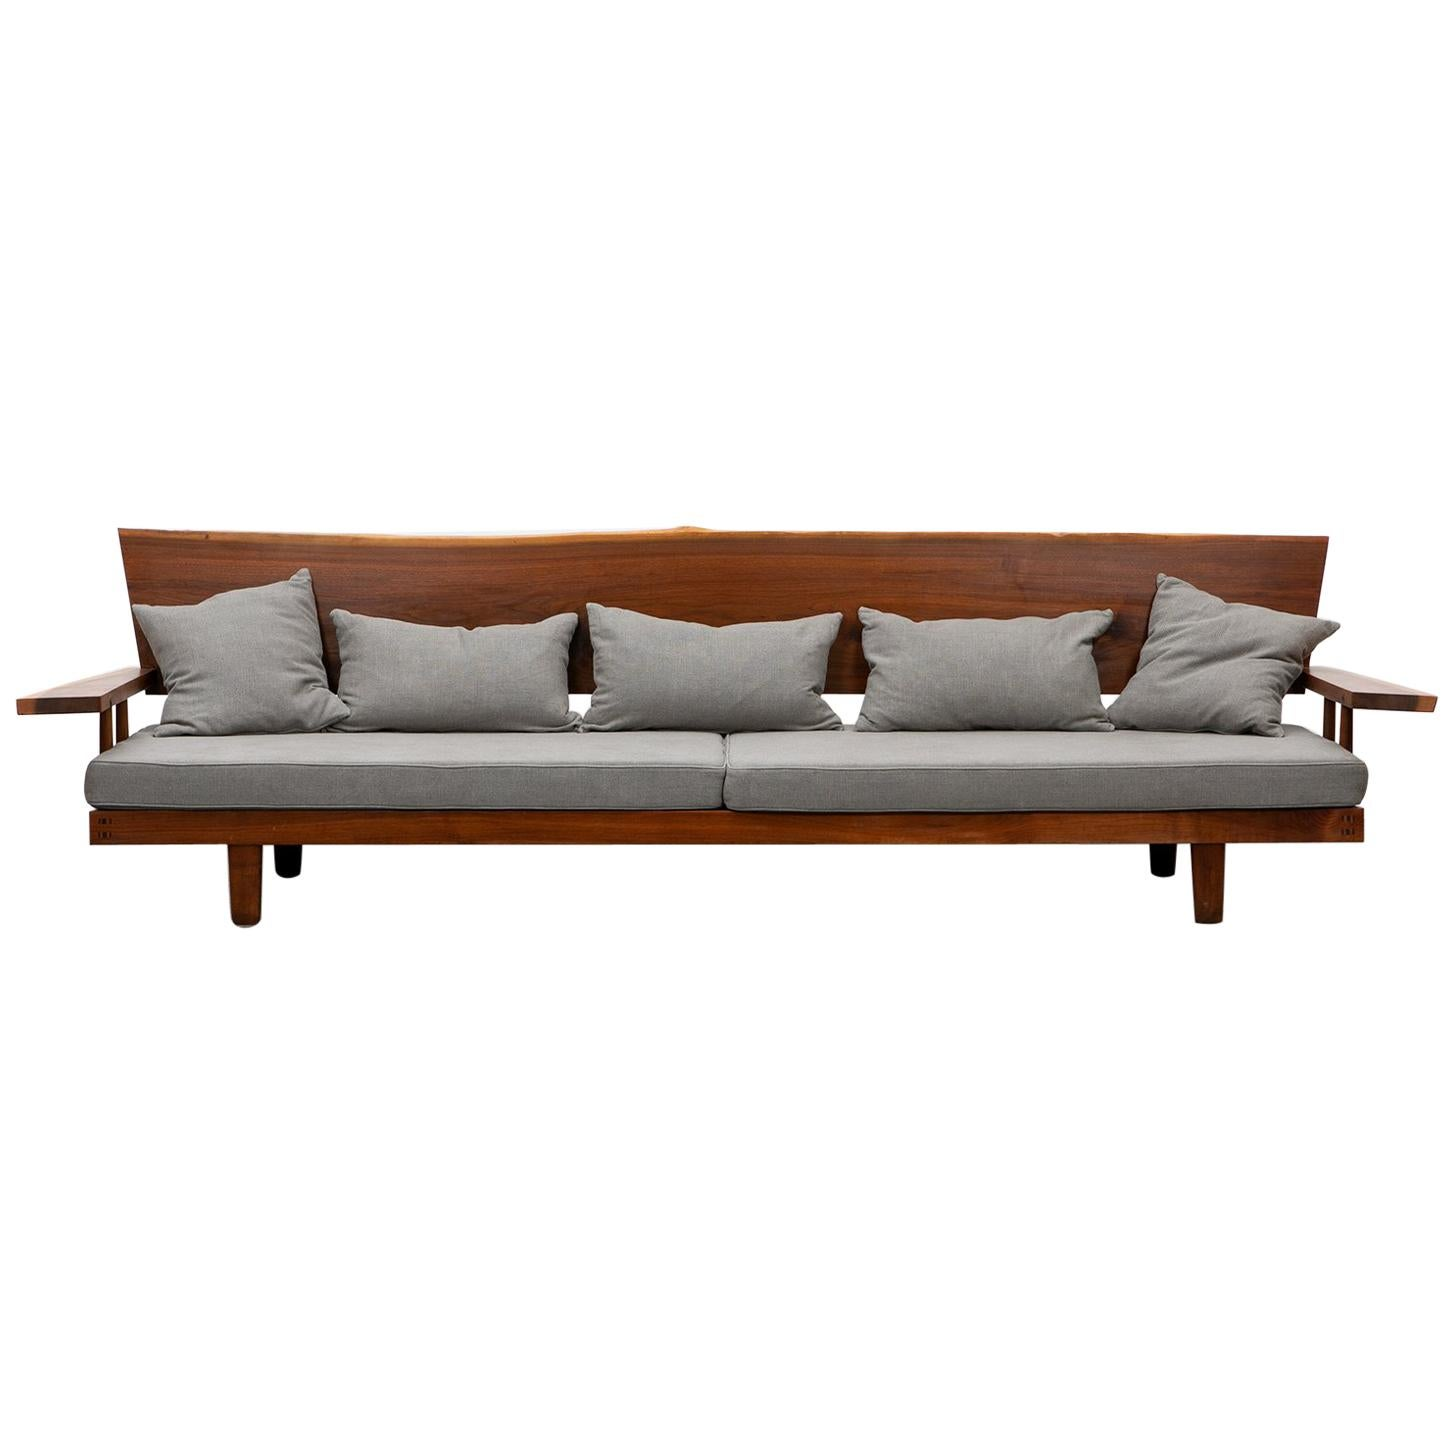 1960s Brown Wooden Sofa by George Nakashima 'B'